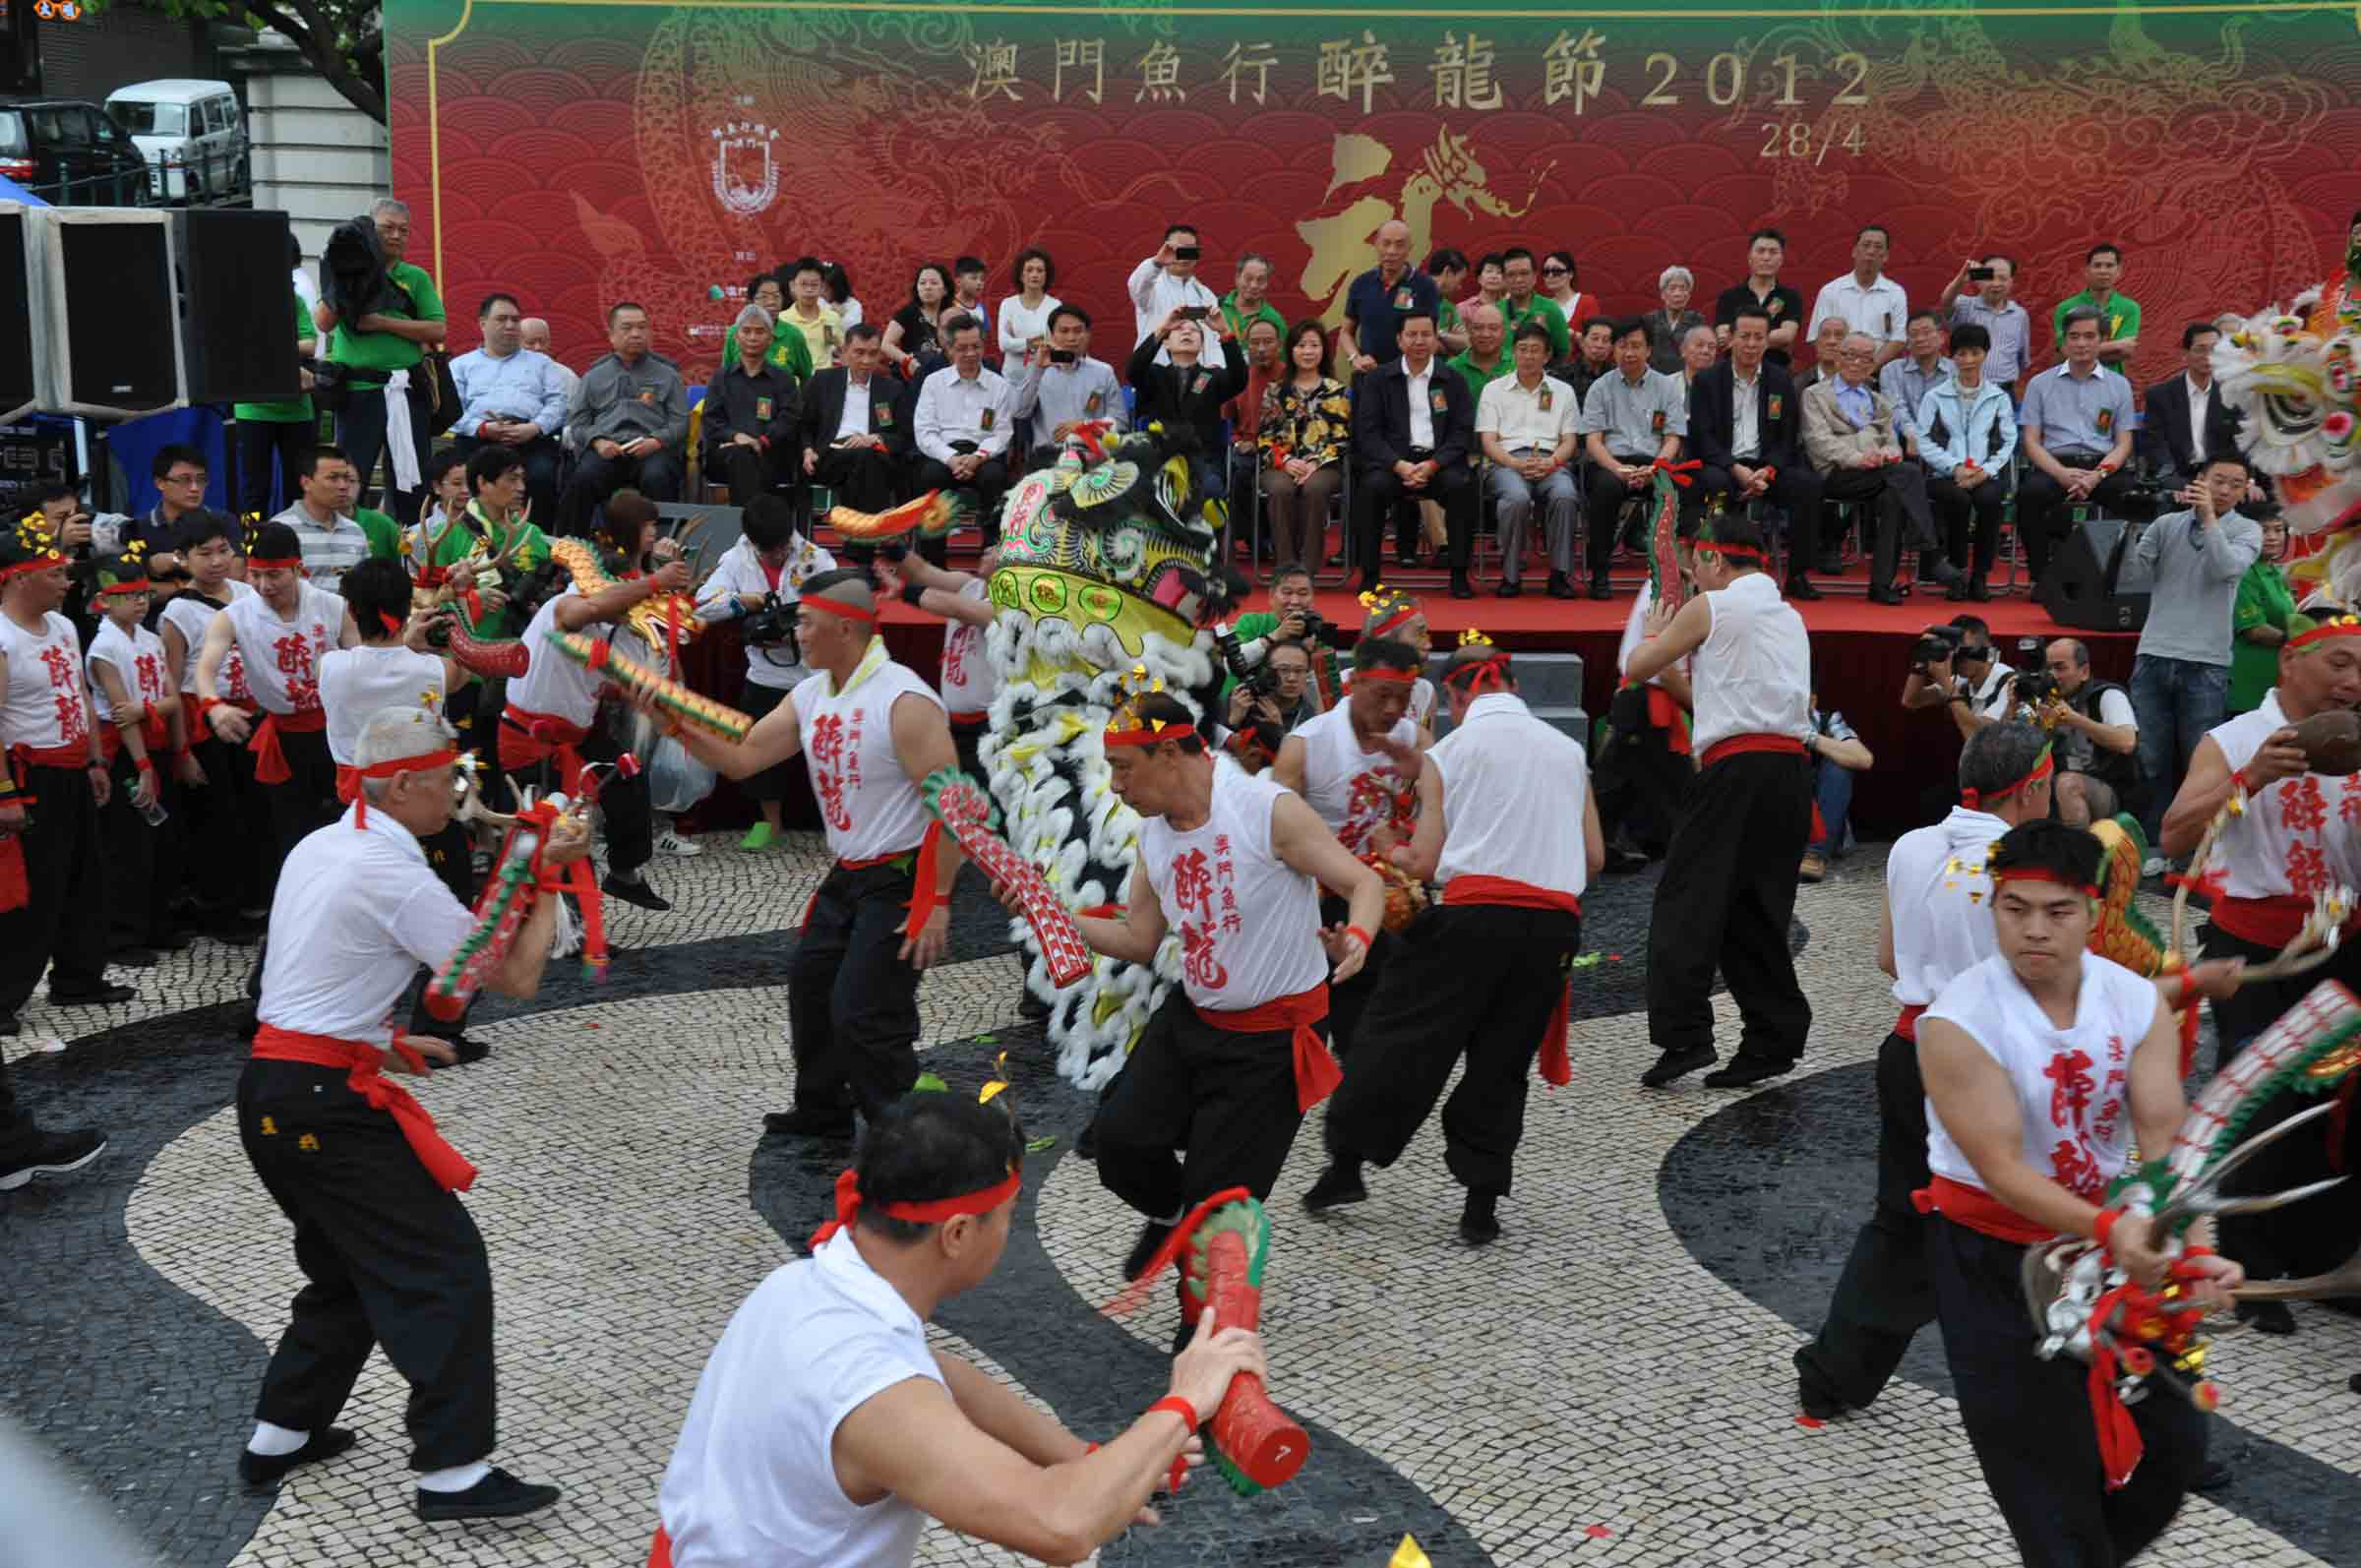 Dragon Dance at the Feast of the Drunken Dragon Festival